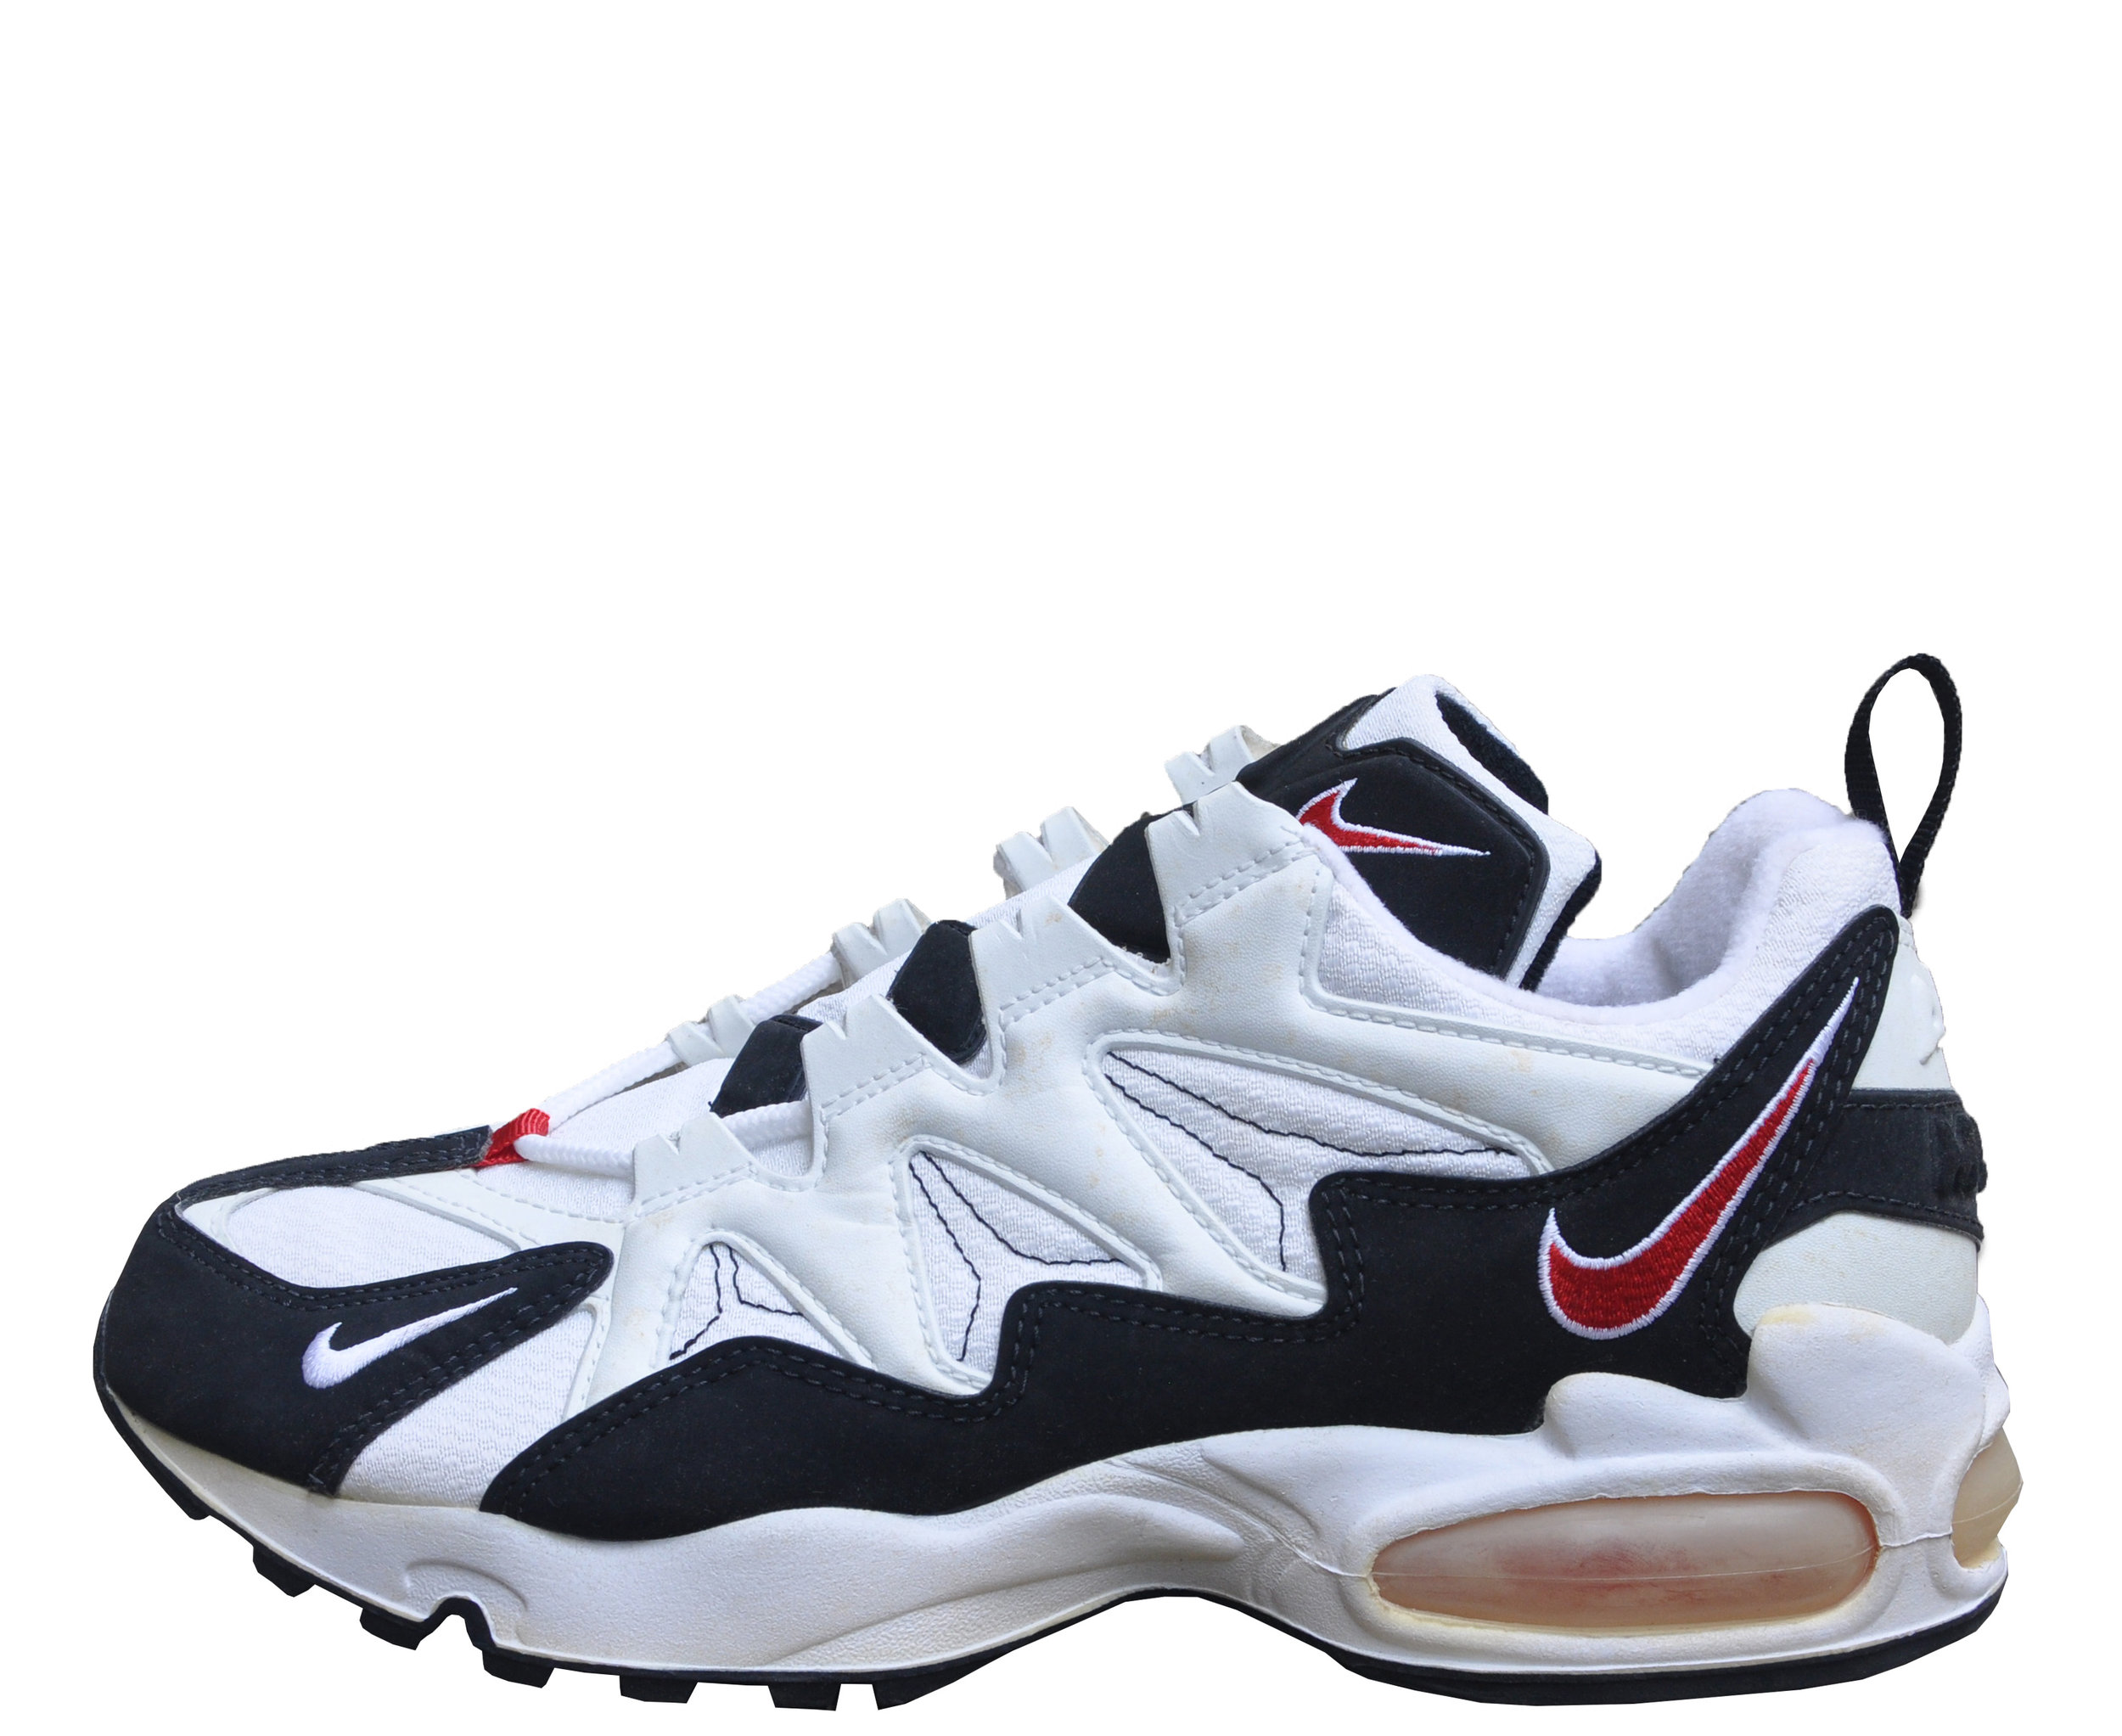 quality design 44587 cac35 Nike Air Max Tailwind 1996 White / Black / Red (Size 9.5) DS — Roots